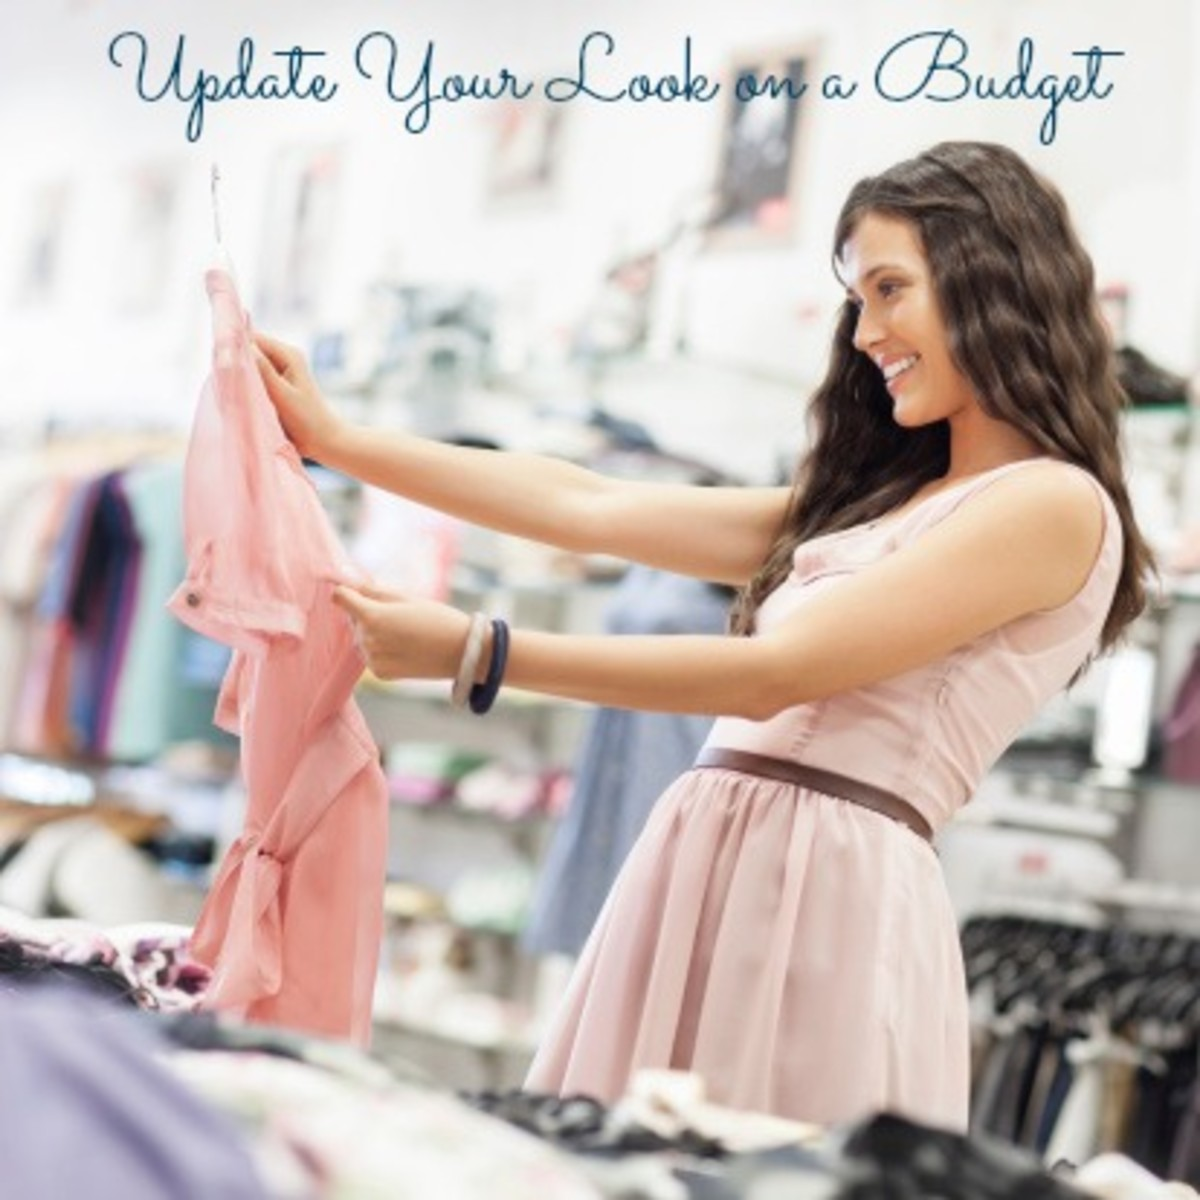 How to Update Your Look on a Budget